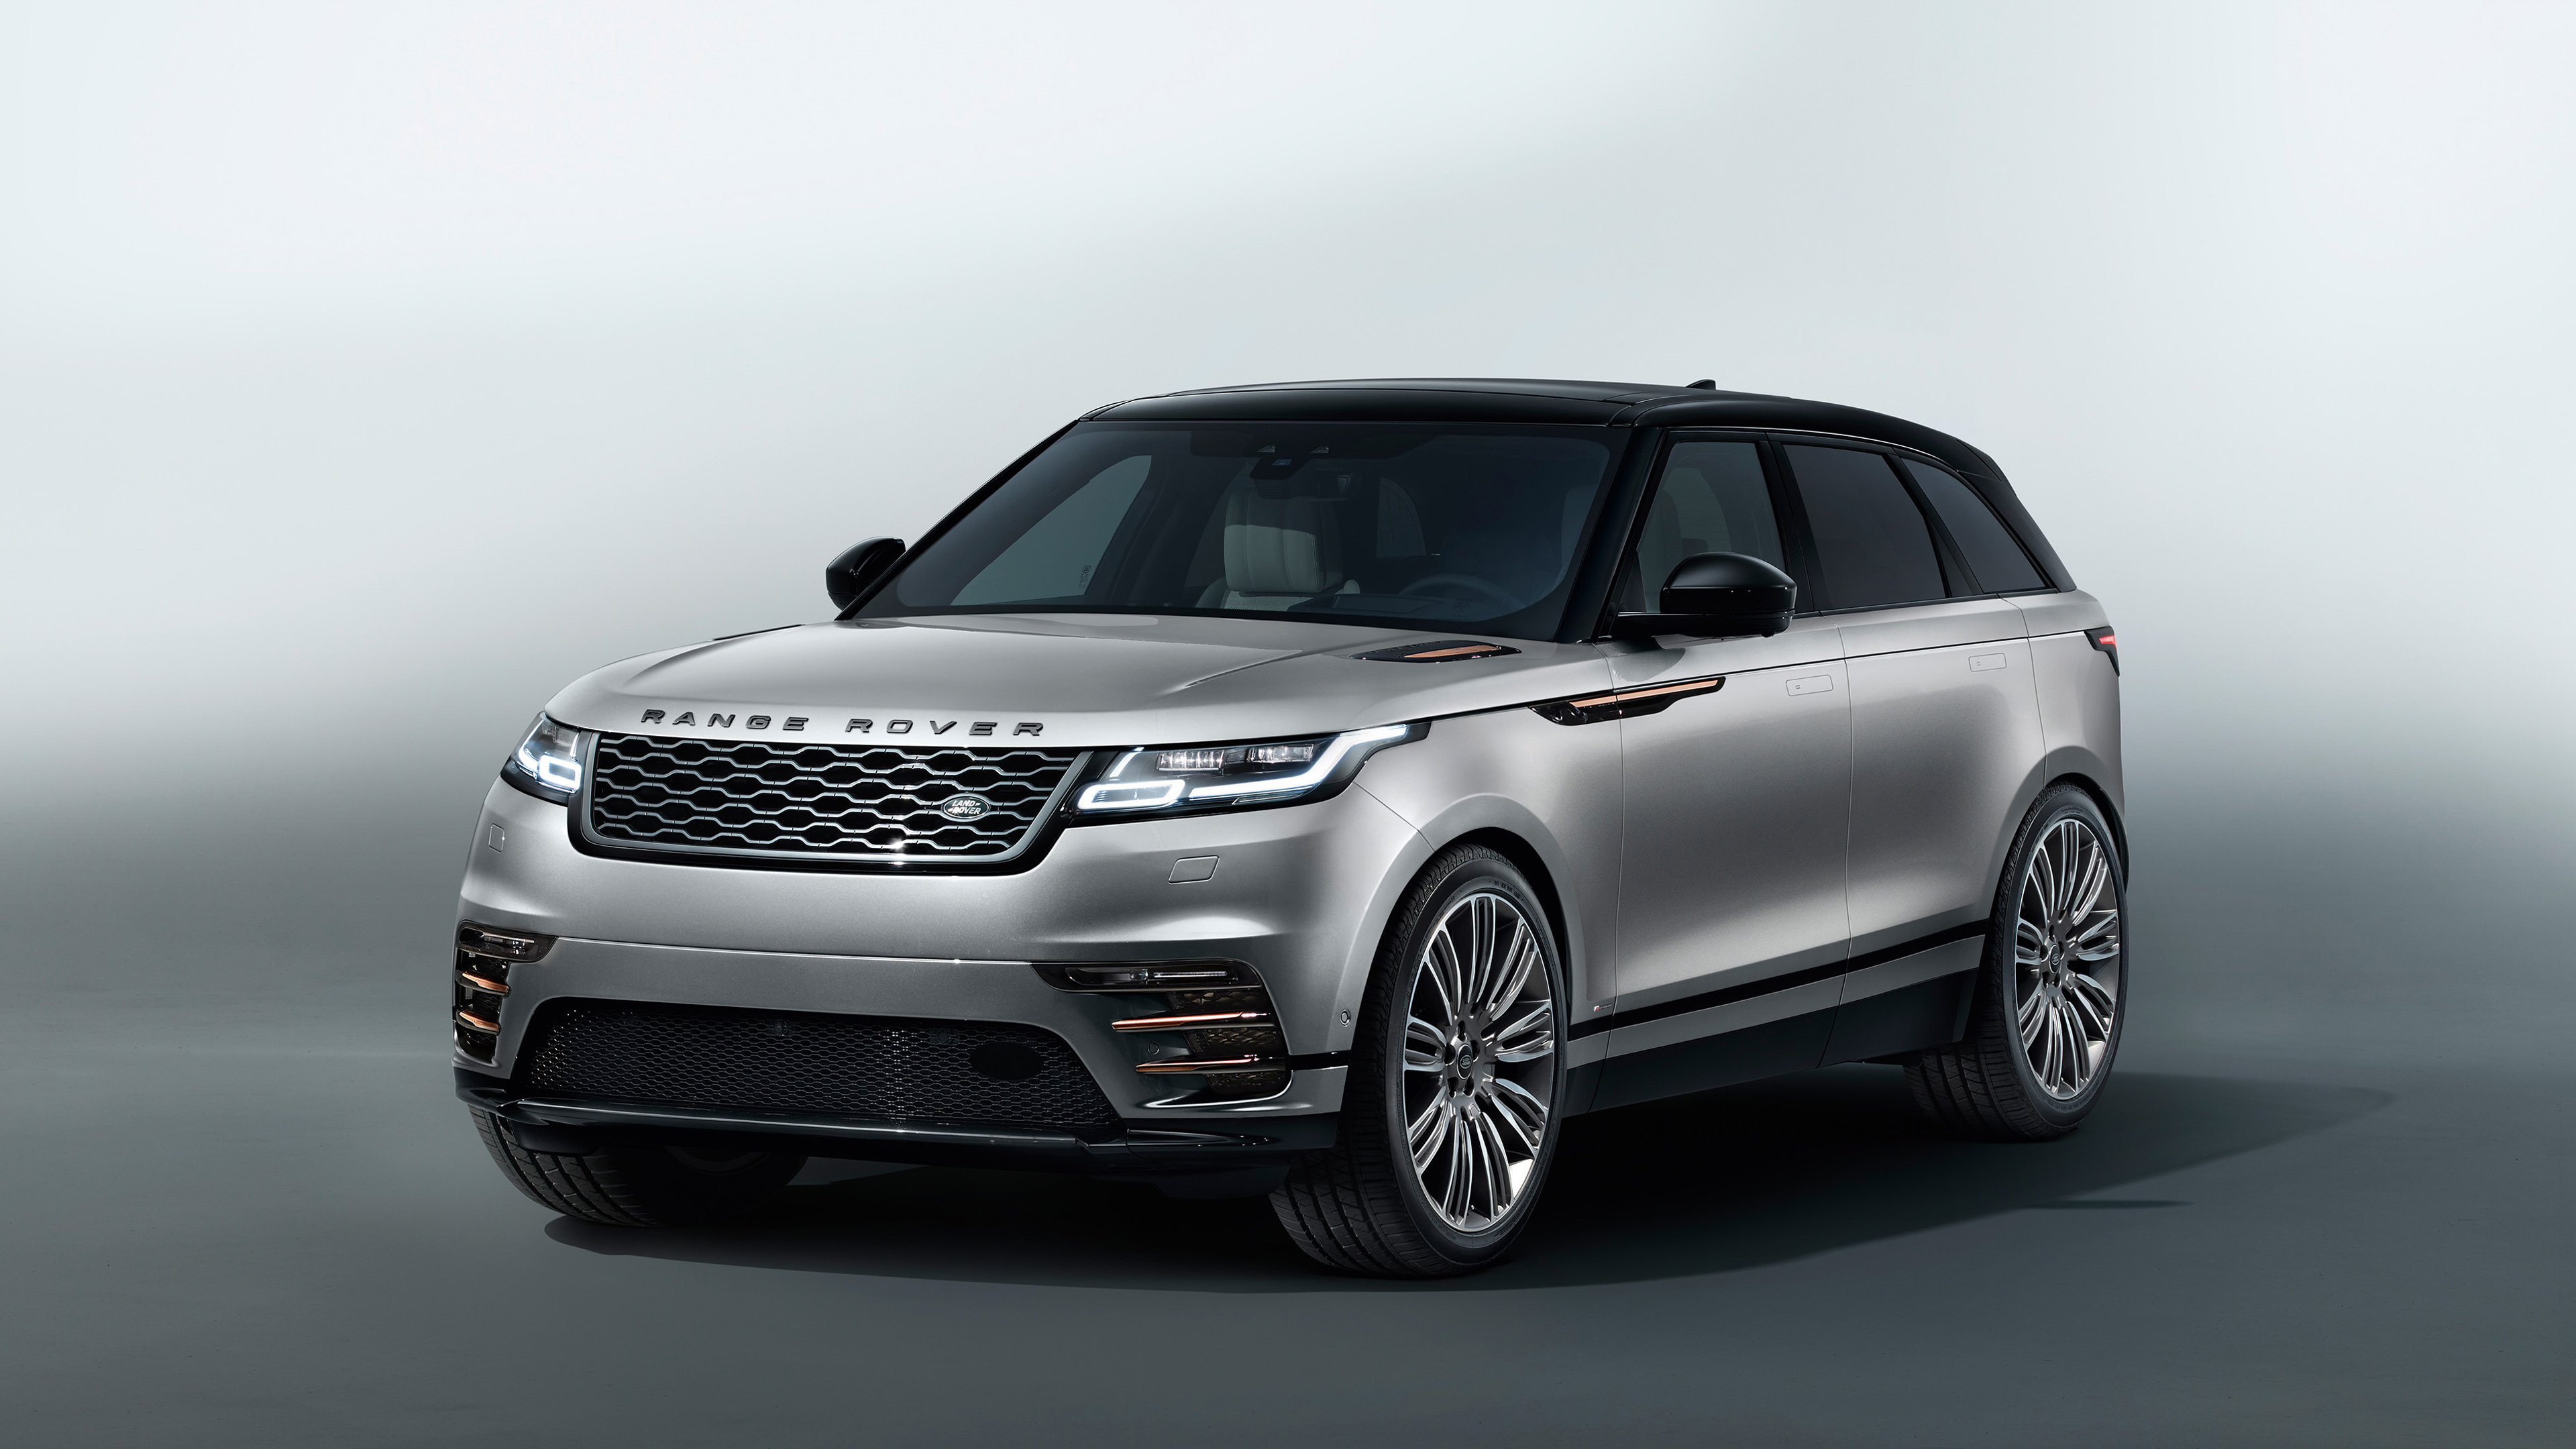 2018 Range Rover Velar 2 Wallpaper Hd Car Wallpapers Id